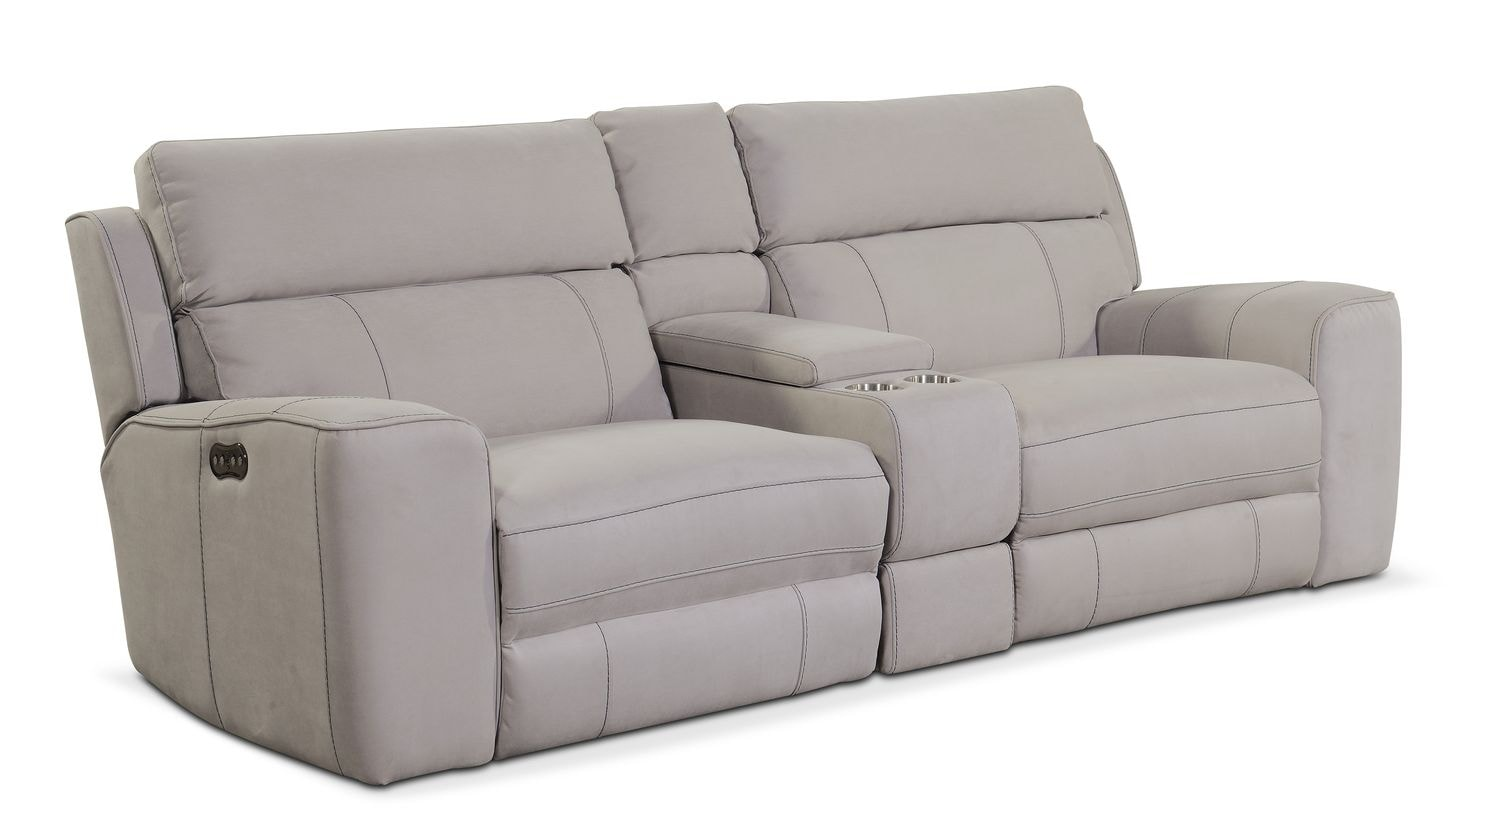 Living Room Furniture   Newport 3 Piece Power Reclining Sofa With Console    Light Gray